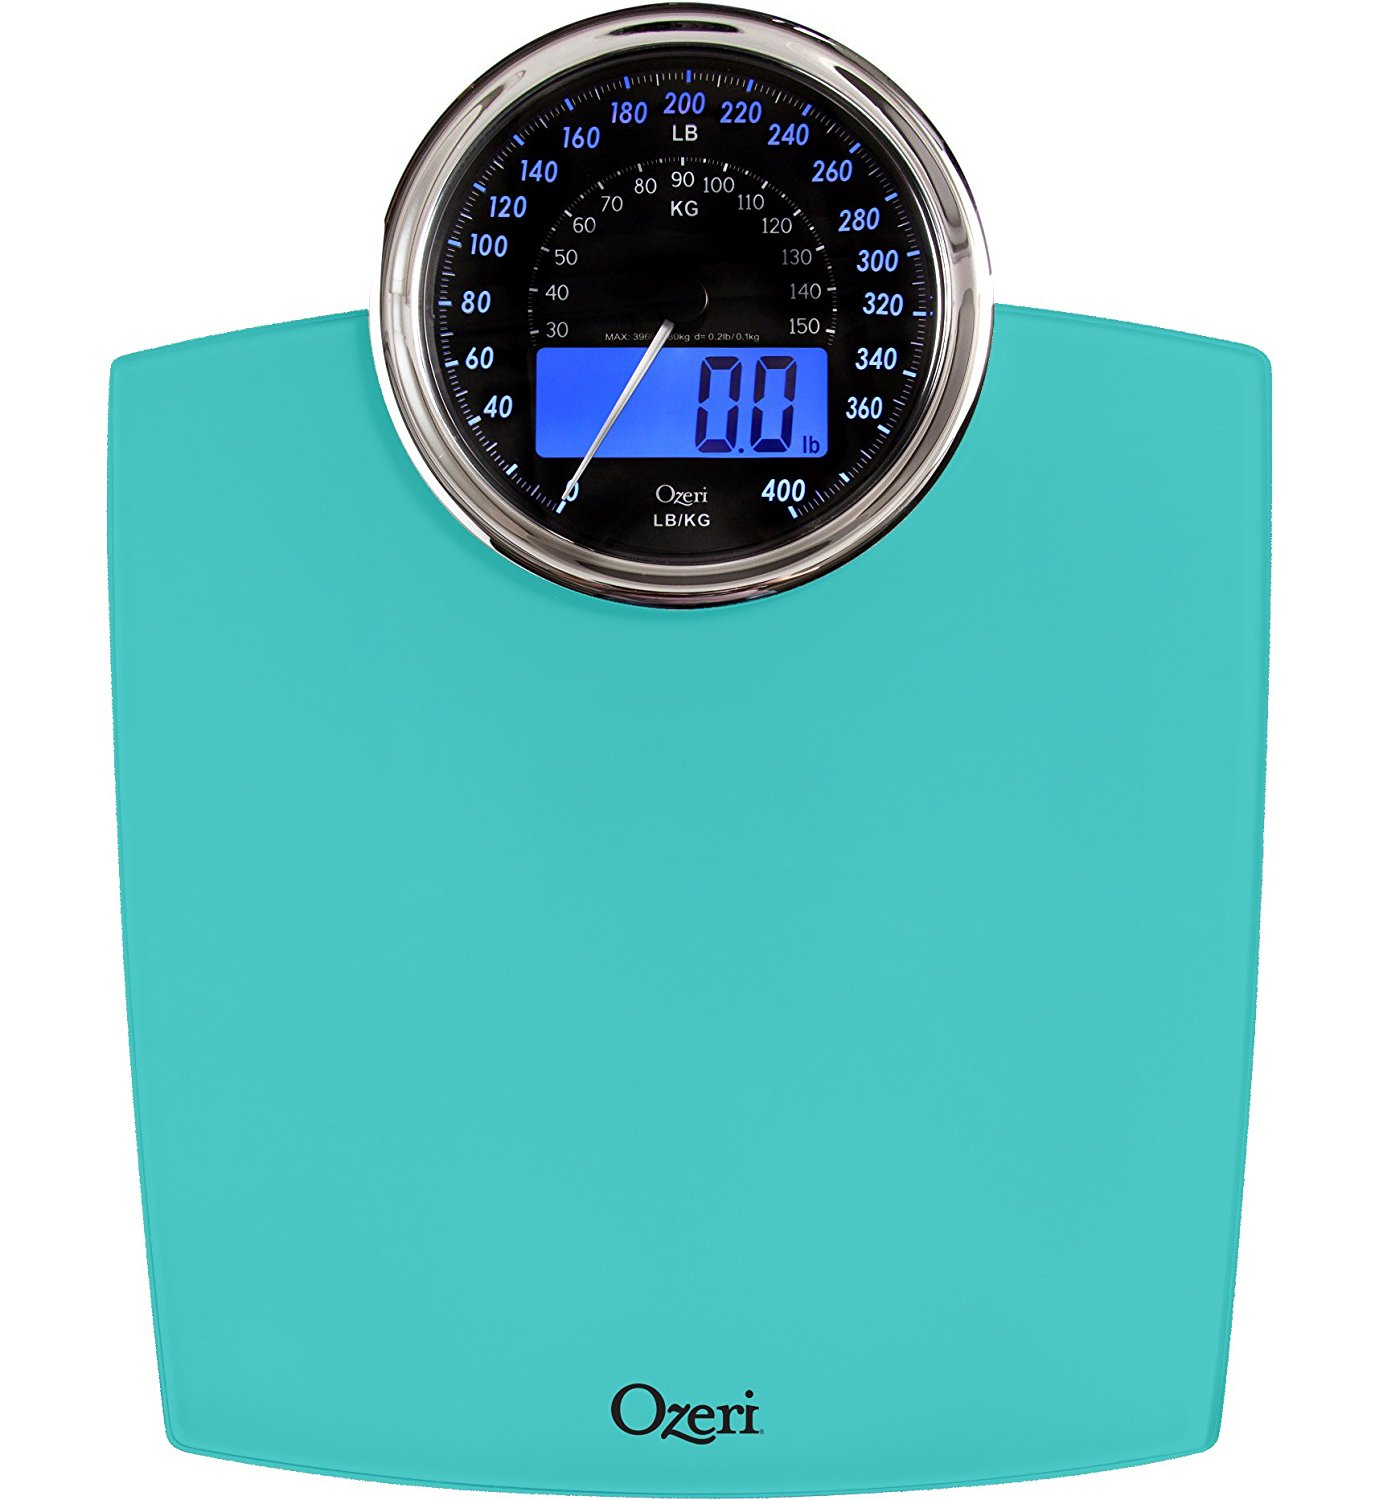 Ozeri Rev Digital Bathroom Scale with Electro-Mechanical Weight Dial